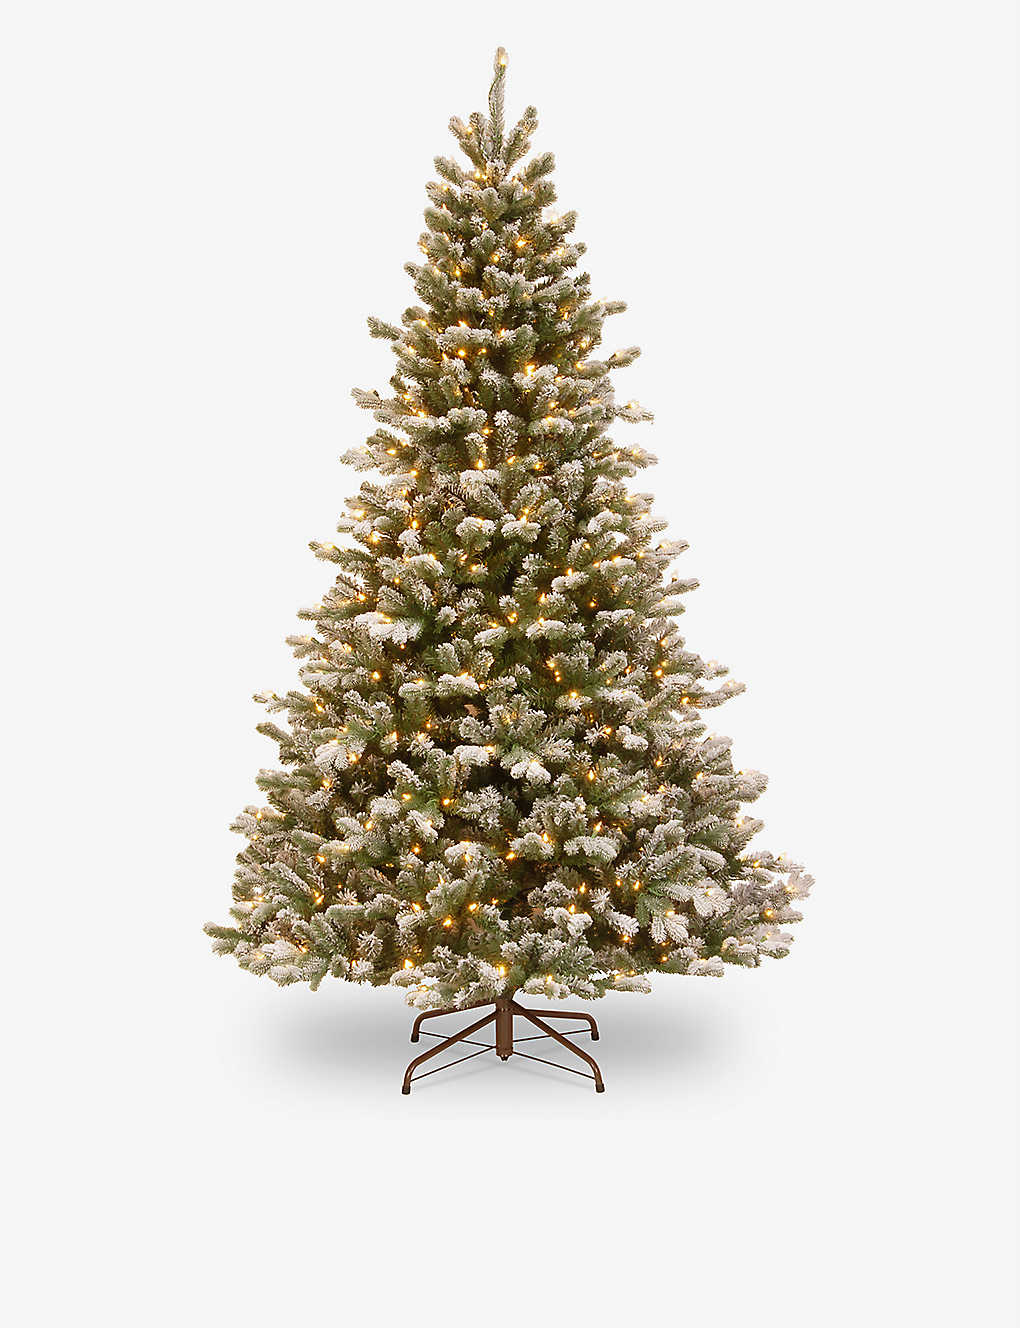 CHRISTMAS: Snowy Sheffield pre-lit Christmas tree decoration 7.5ft